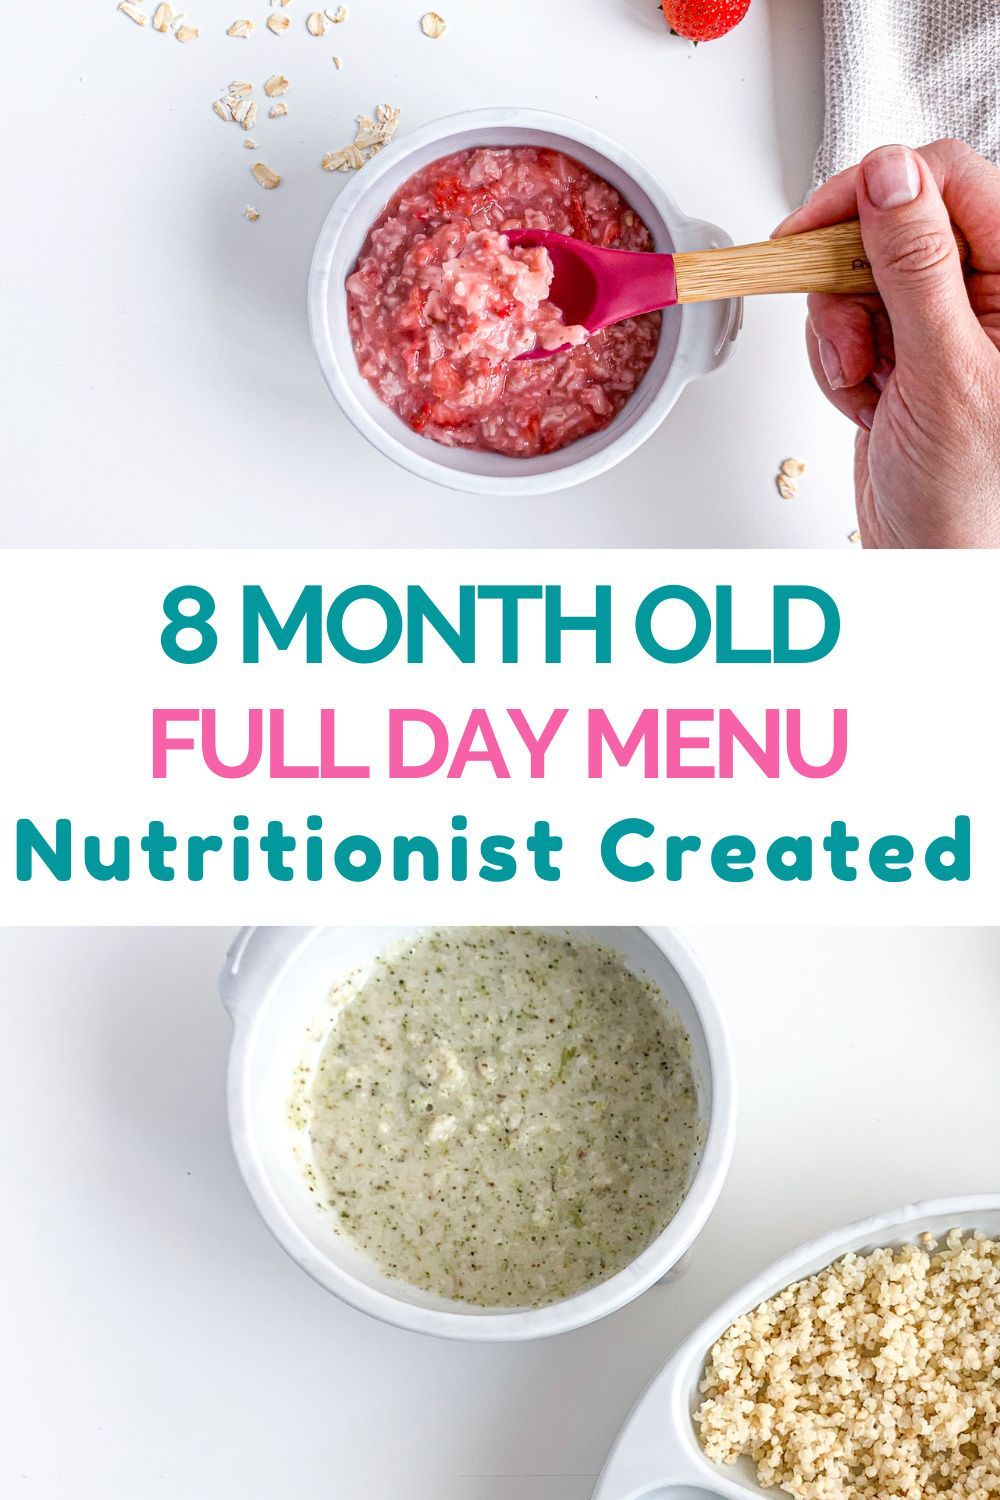 8 Month Old Meal Plan - Nutritionist Approved | Creative ...